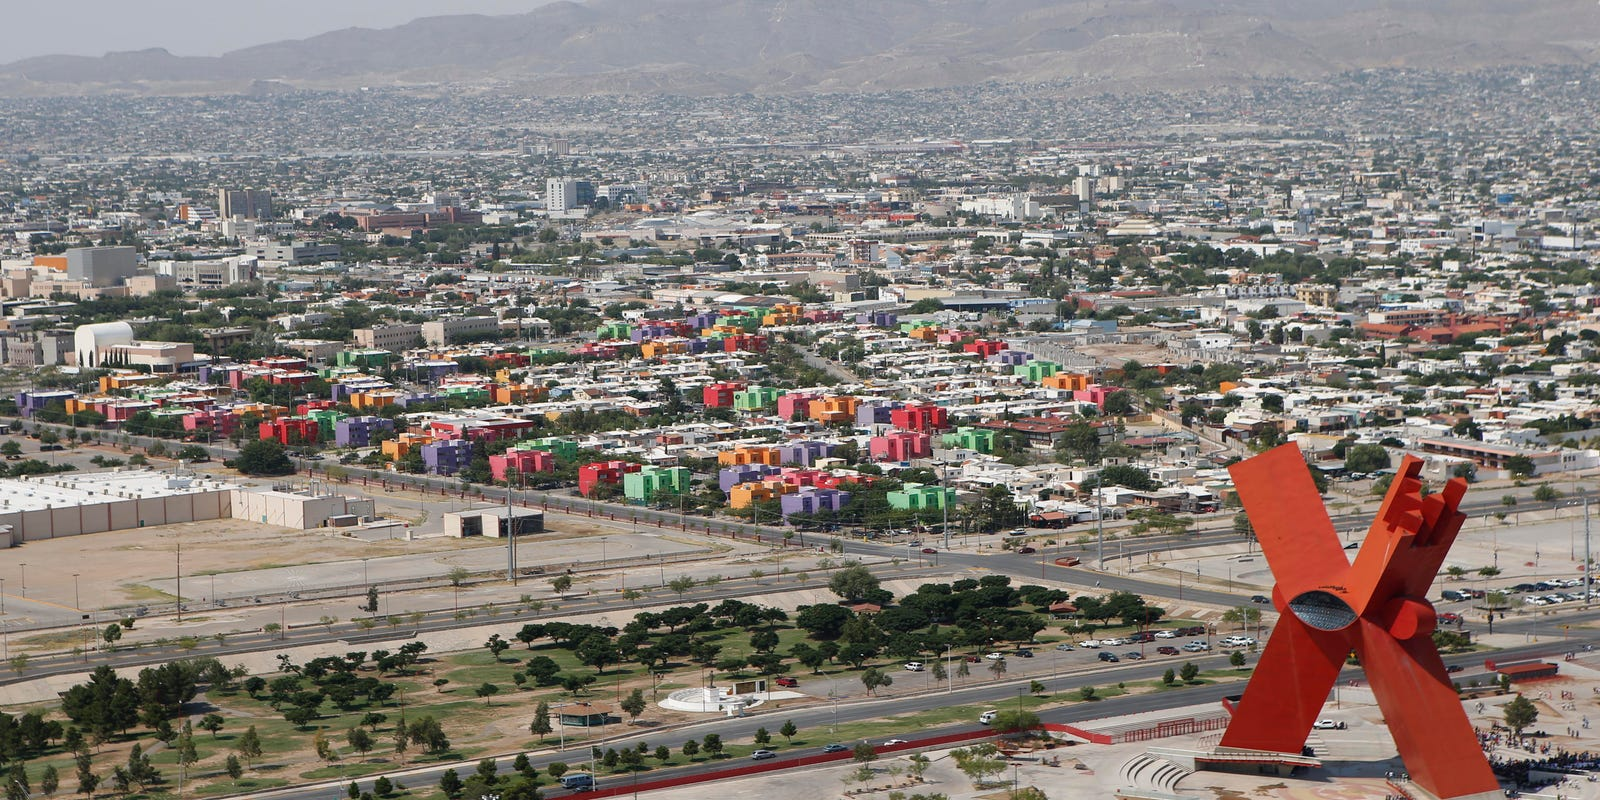 Juárez artist and activist Isabel Cabanillas killed in unsolved shooting